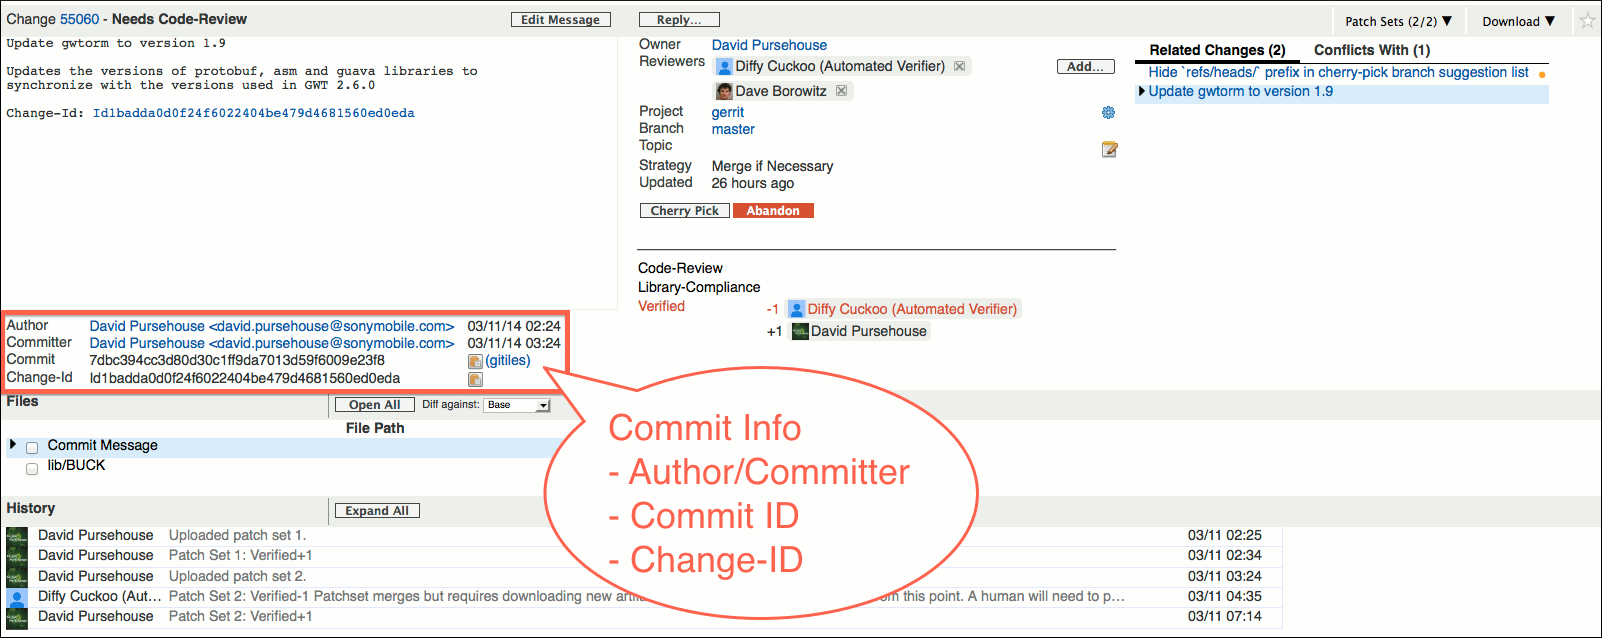 images/user-review-ui-change-screen-commit-info.png